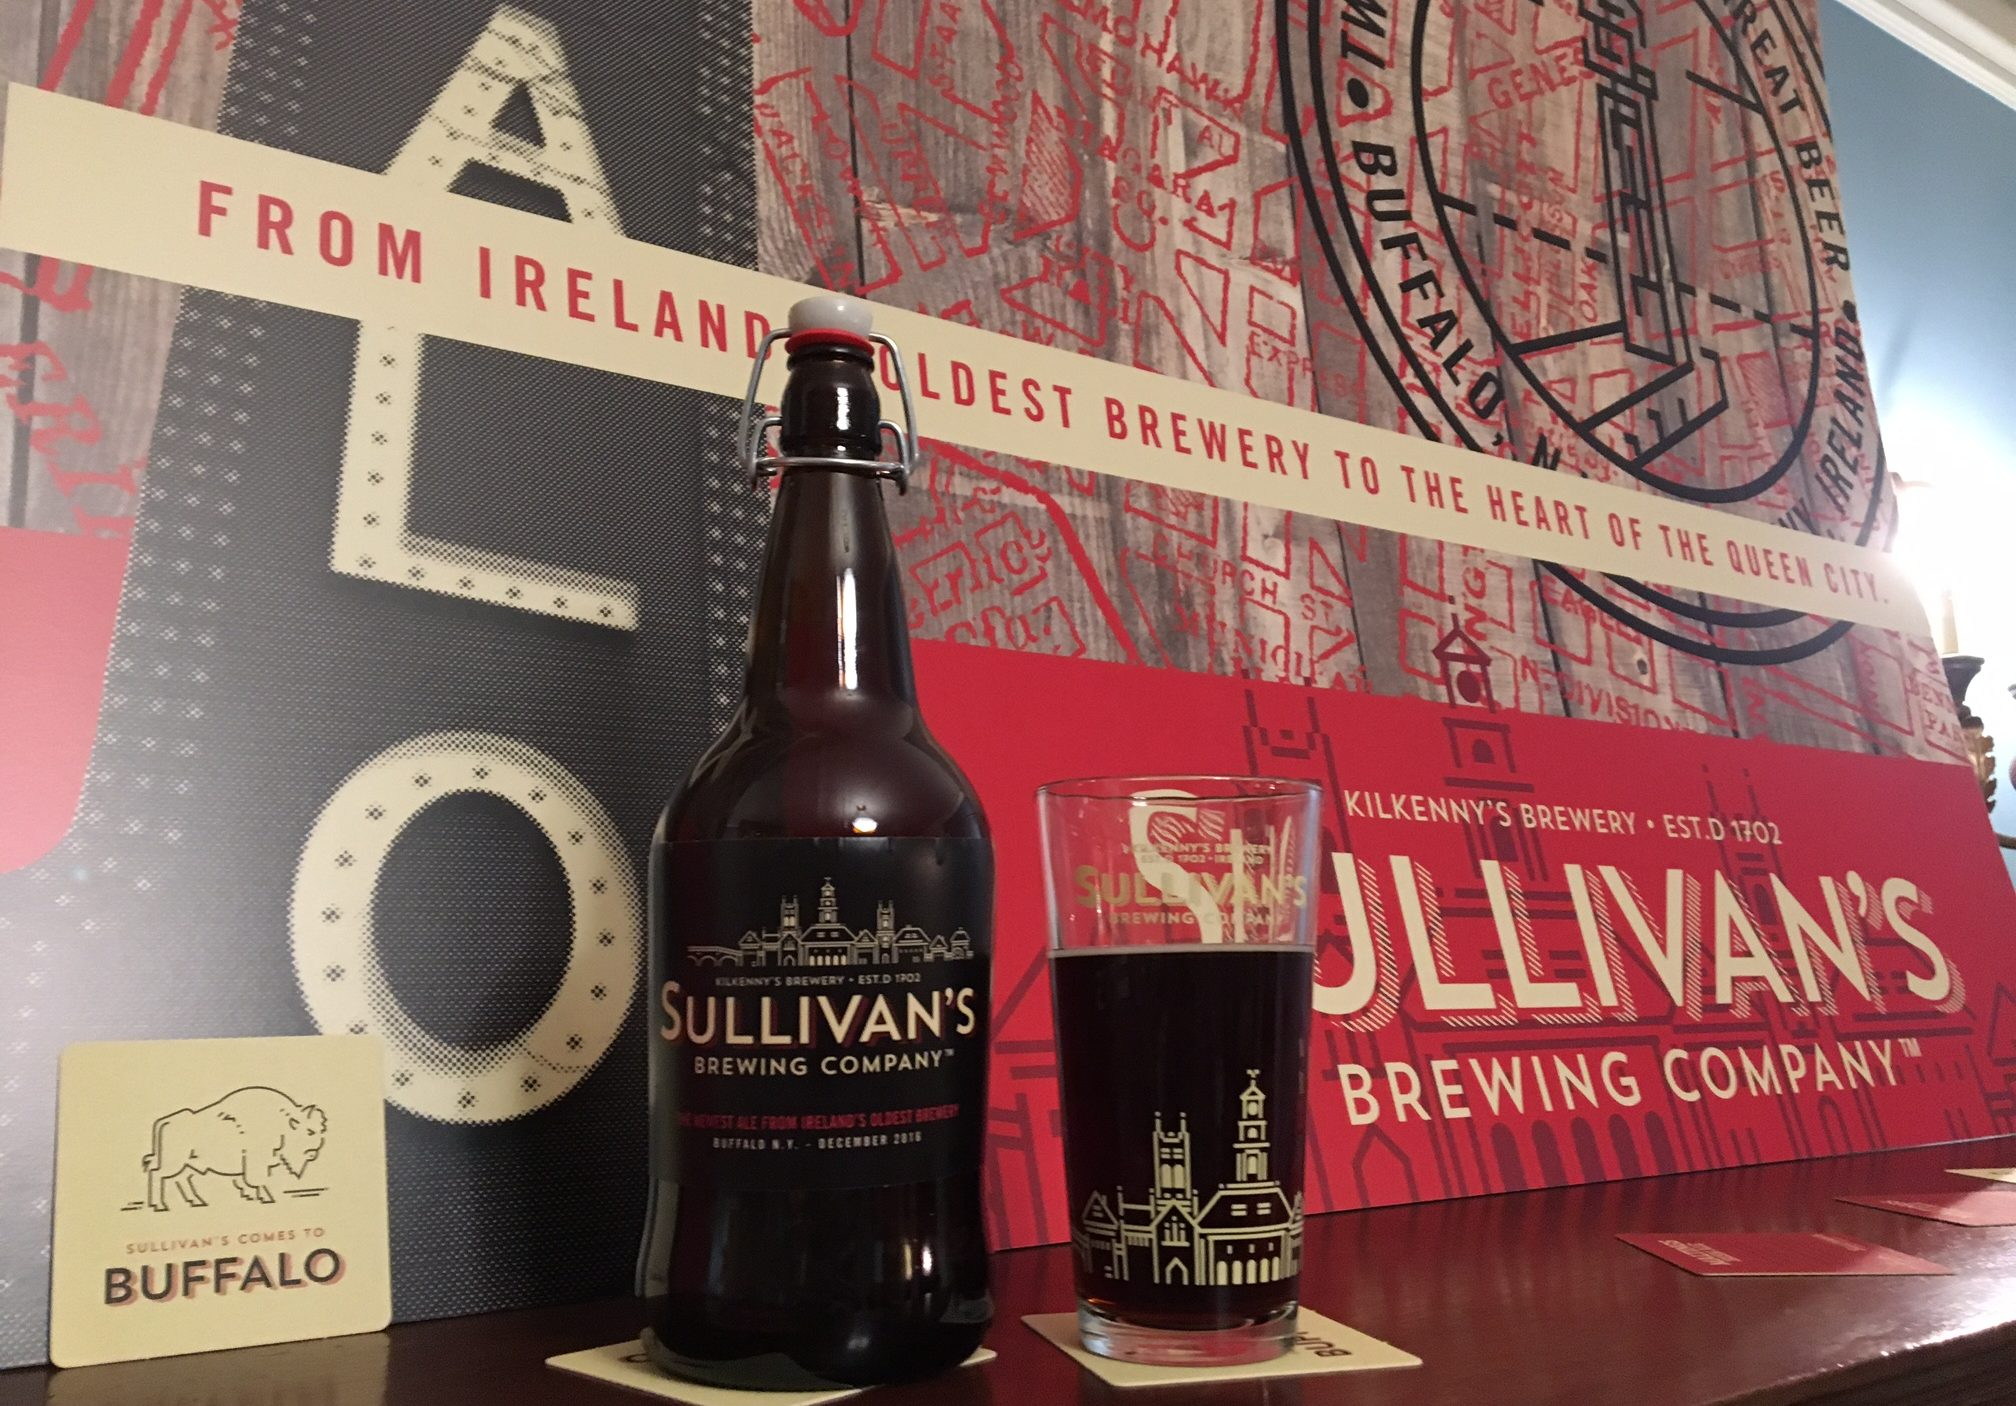 Maltings Irish Ale has arrived in the U.S. from Ireland but you can get it only at a few Buffalo pubs. (Photos by Scott Scanlon)